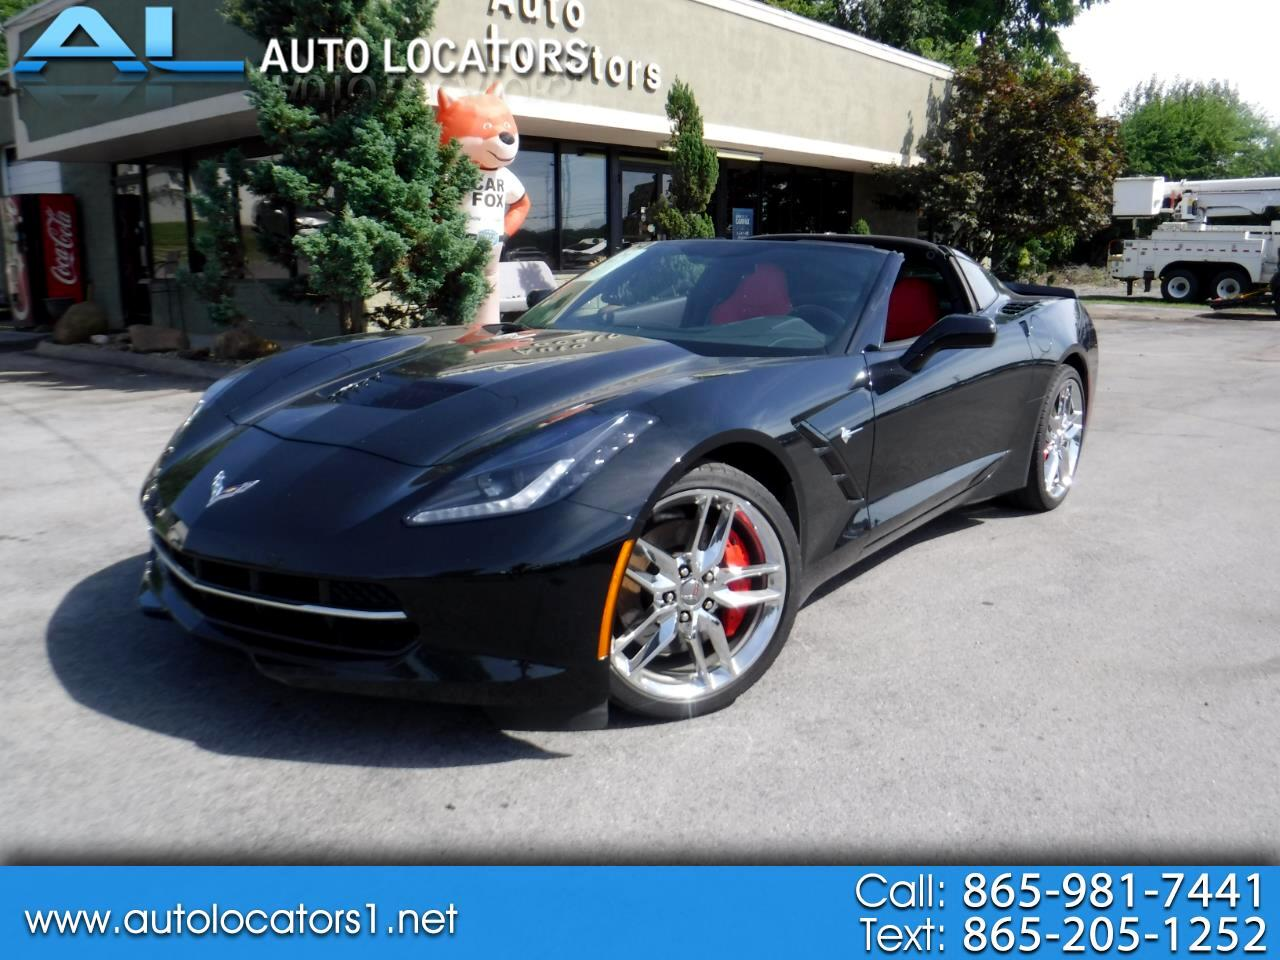 2014 Chevrolet Corvette Stingray 2dr Z51 Cpe w/1LT